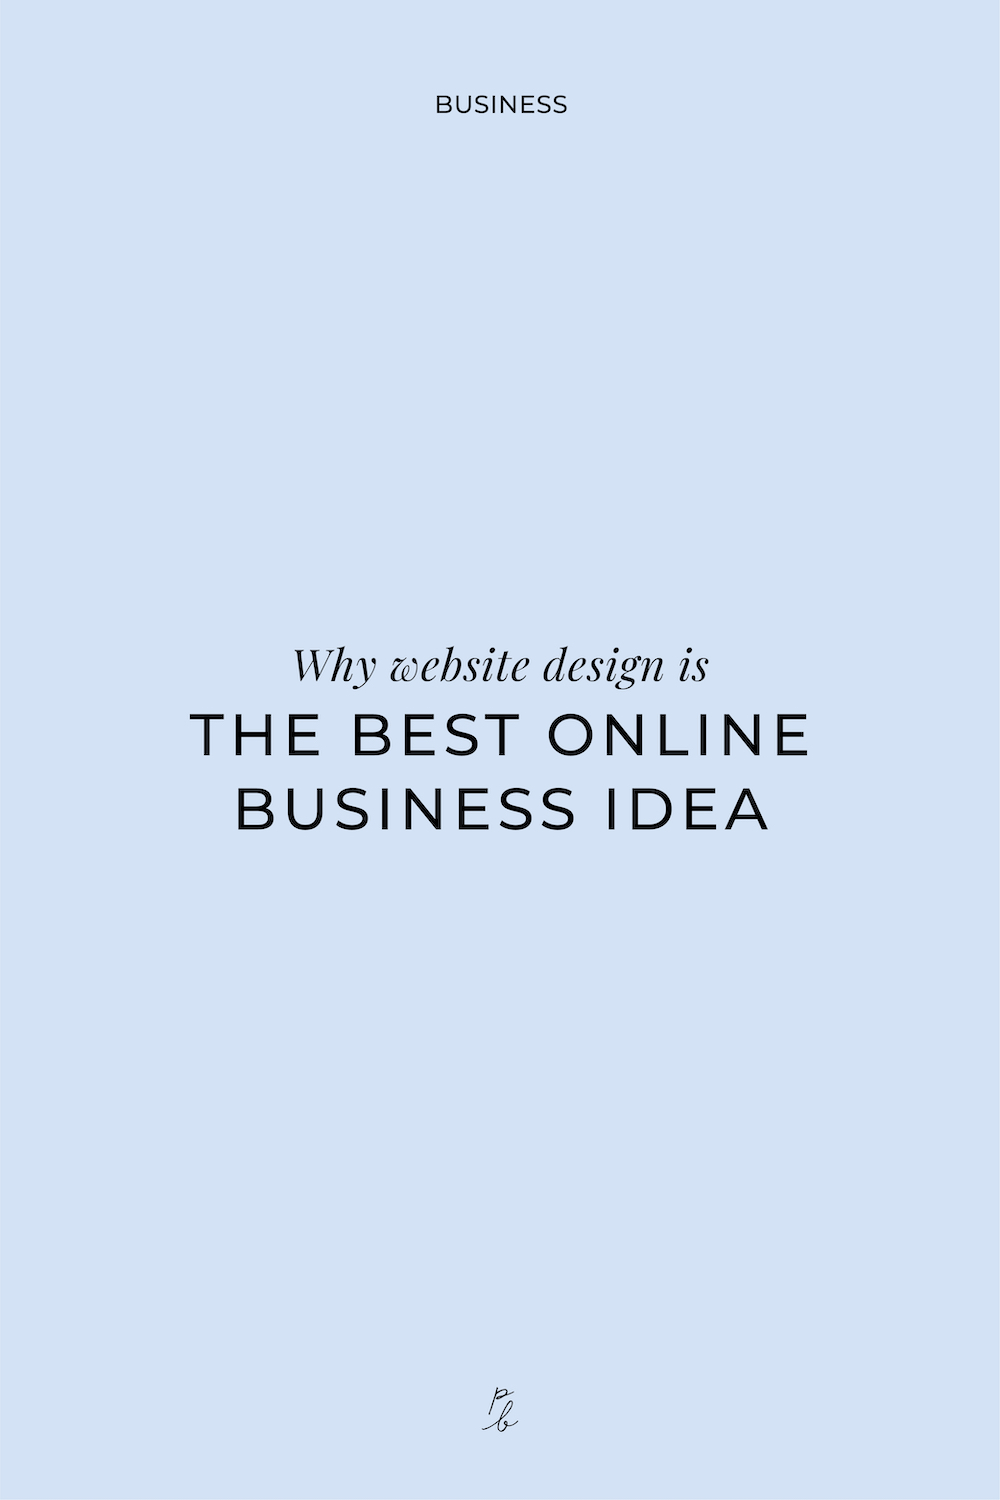 2-why website design is the best online business idea.jpg